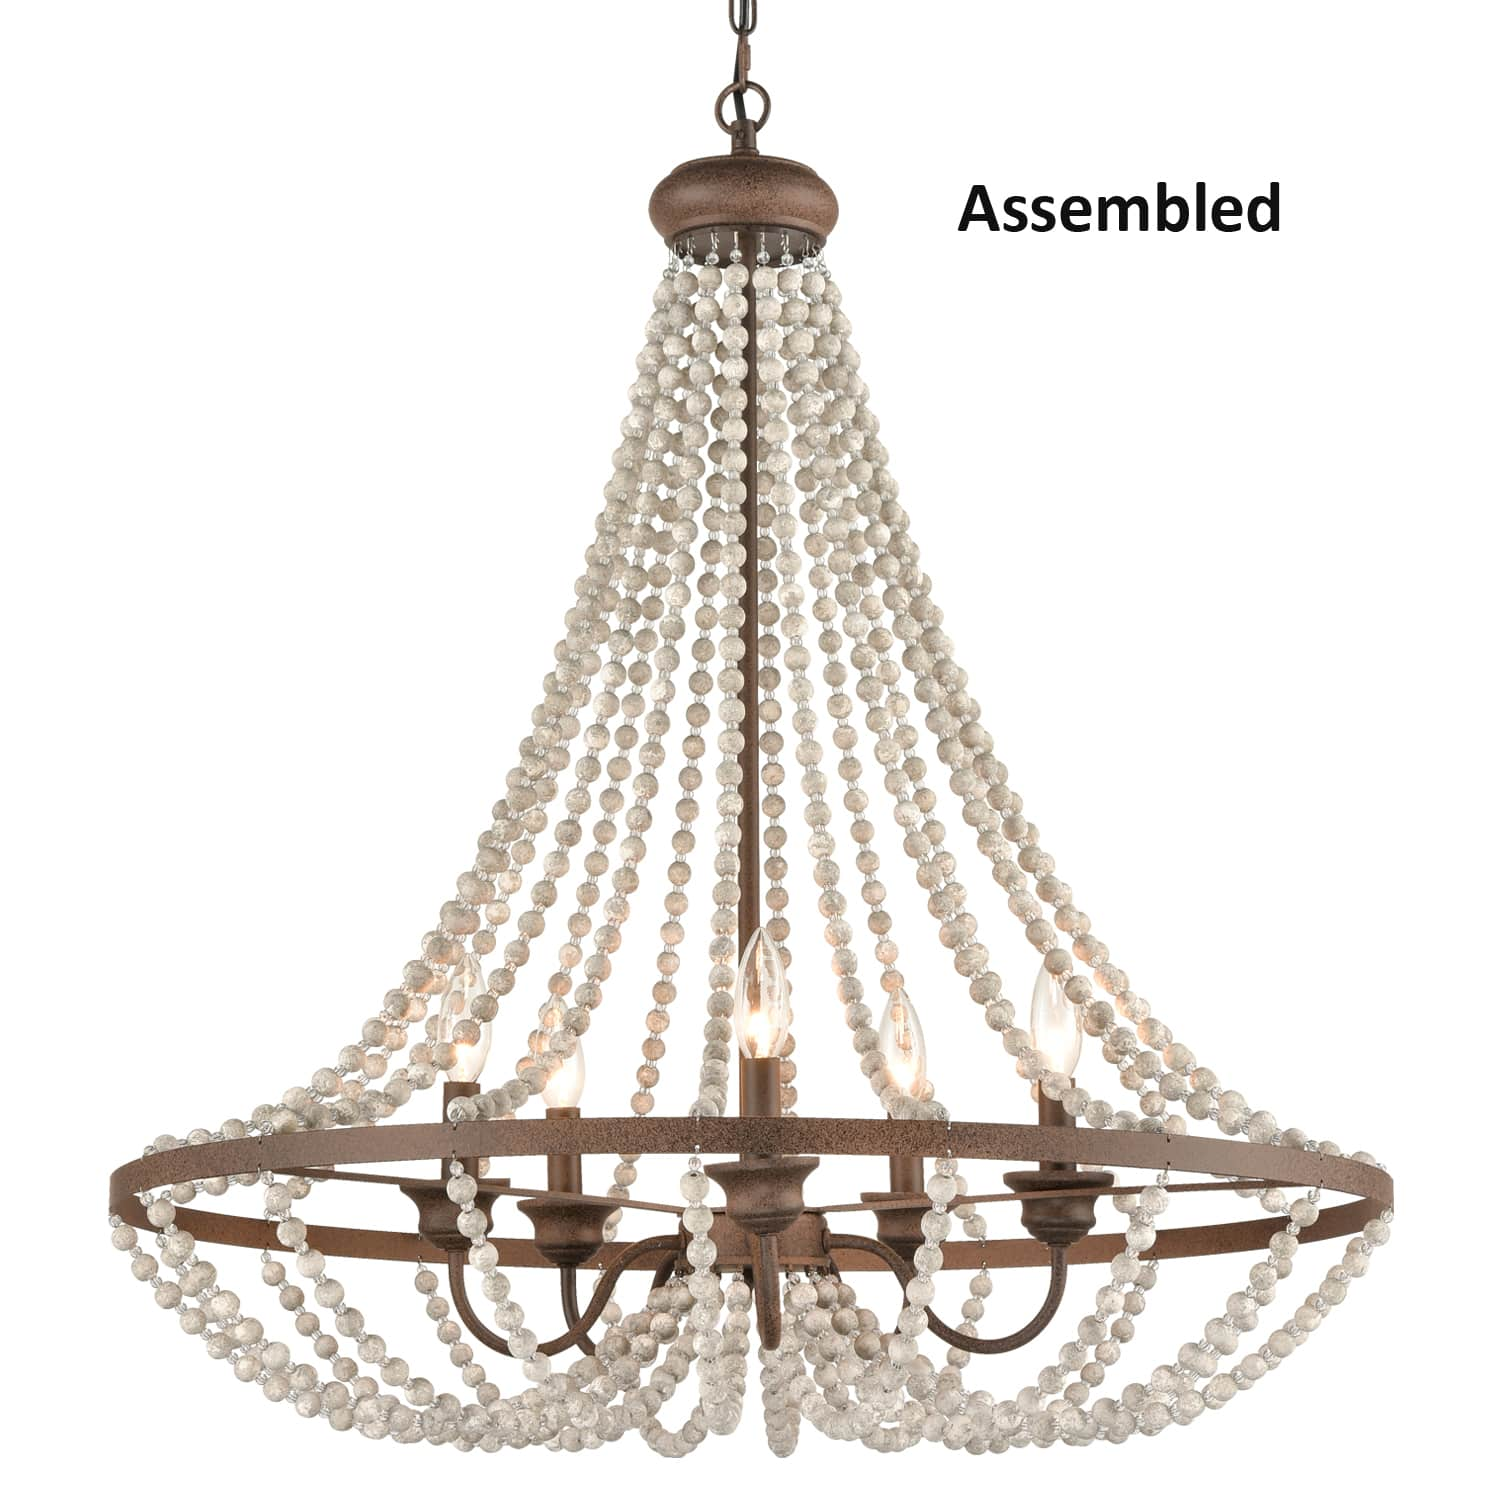 Rustic Wood Beaded Chandeliers for Dining Room 5 Lights Fixture